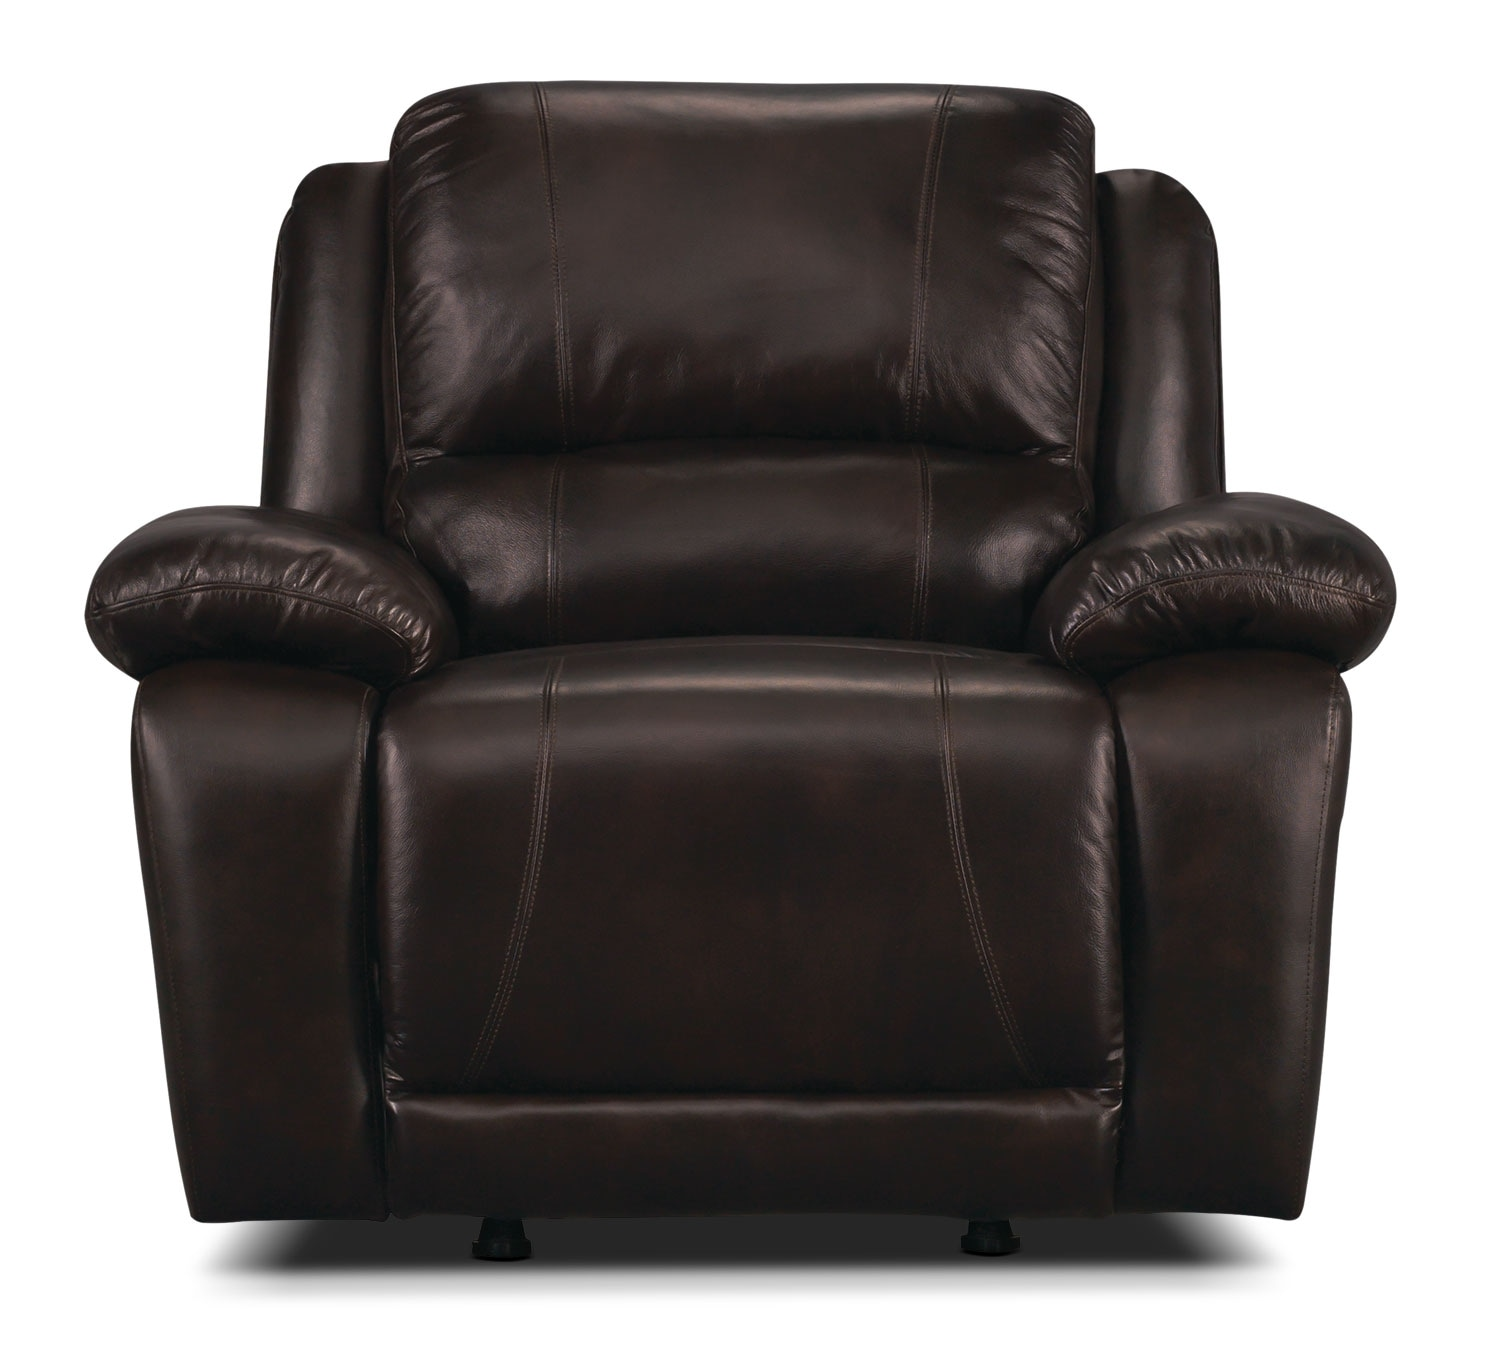 Wingback Recliners Chairs Living Room Furniture Chairs The Brick